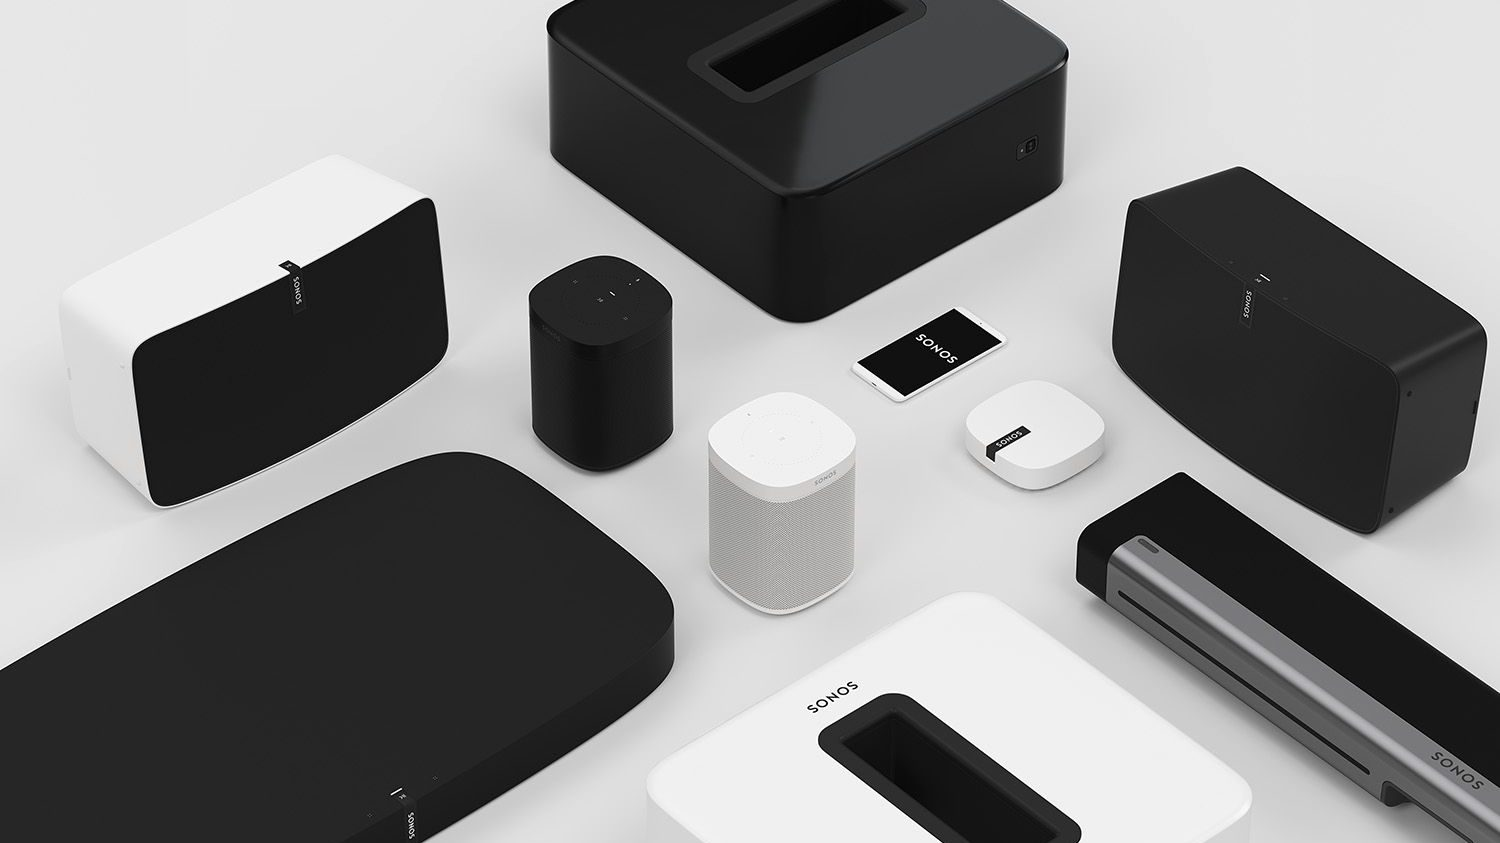 High-end speaker company Sonos is going public